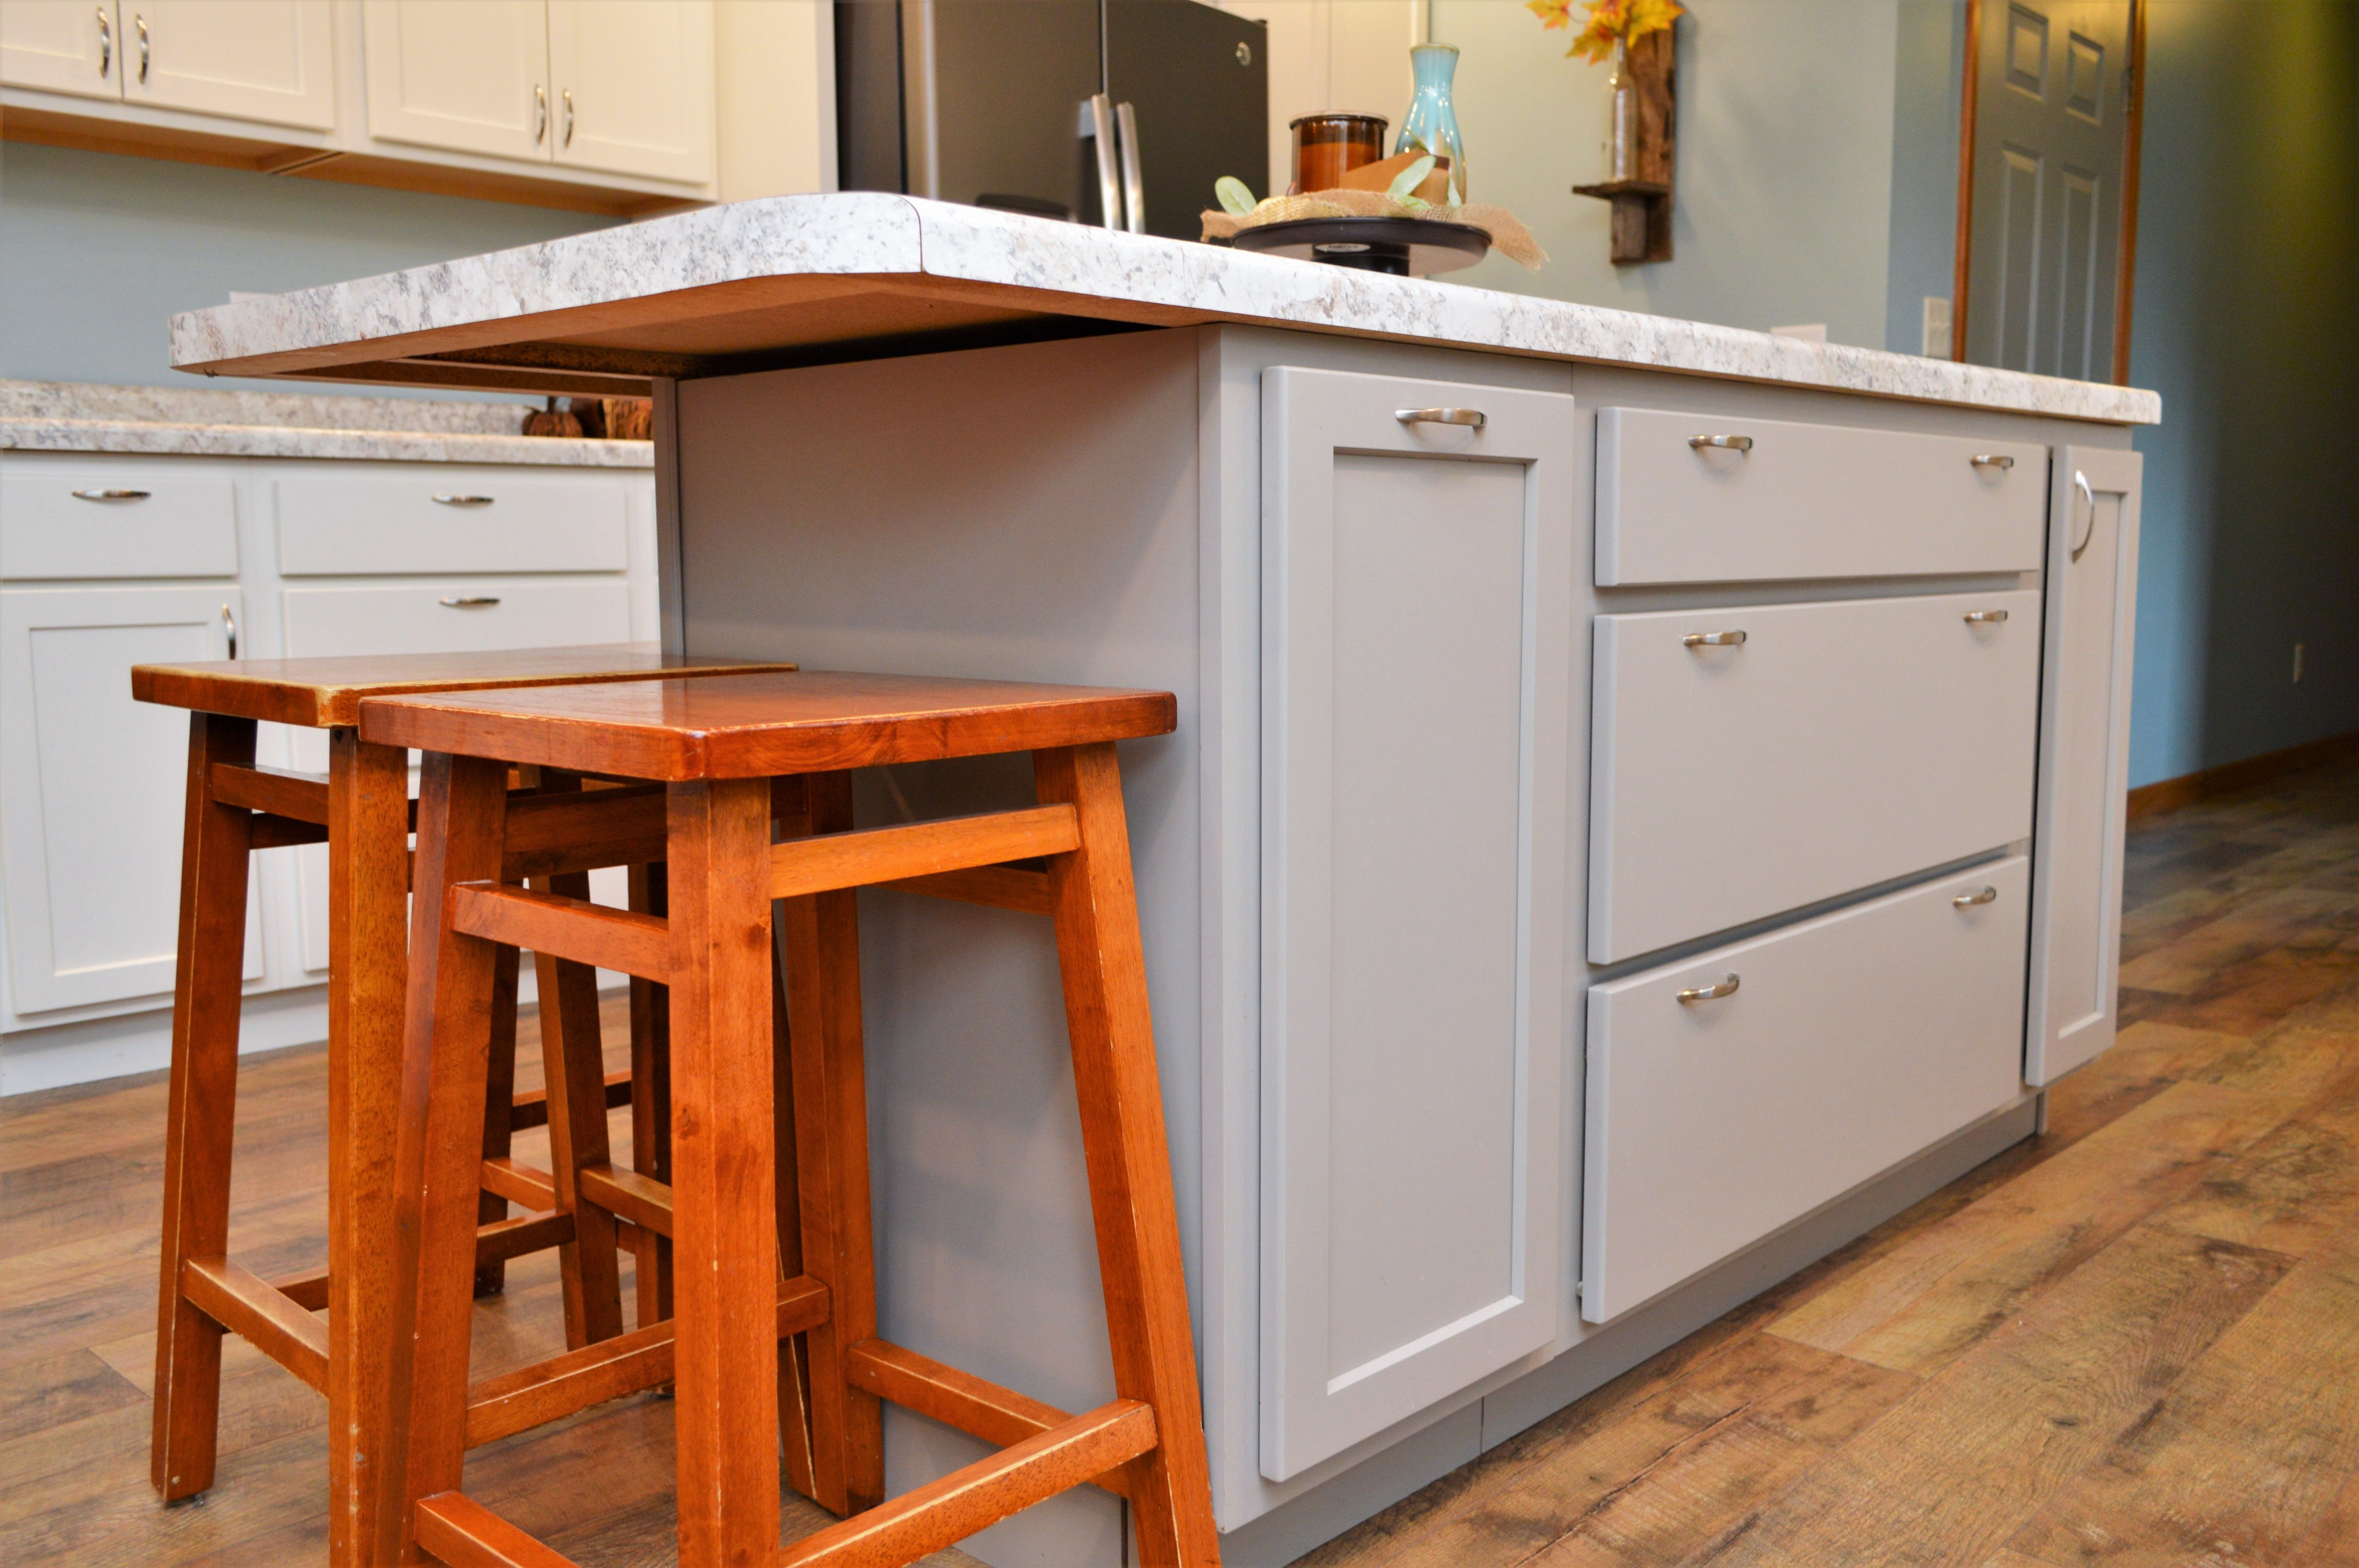 Bailey S Cabinets Haas Lifestyle Collection Maple Perfect Grey Finish Hometown Door Style Kitchen Plans Kitchen Island Kitchen Design